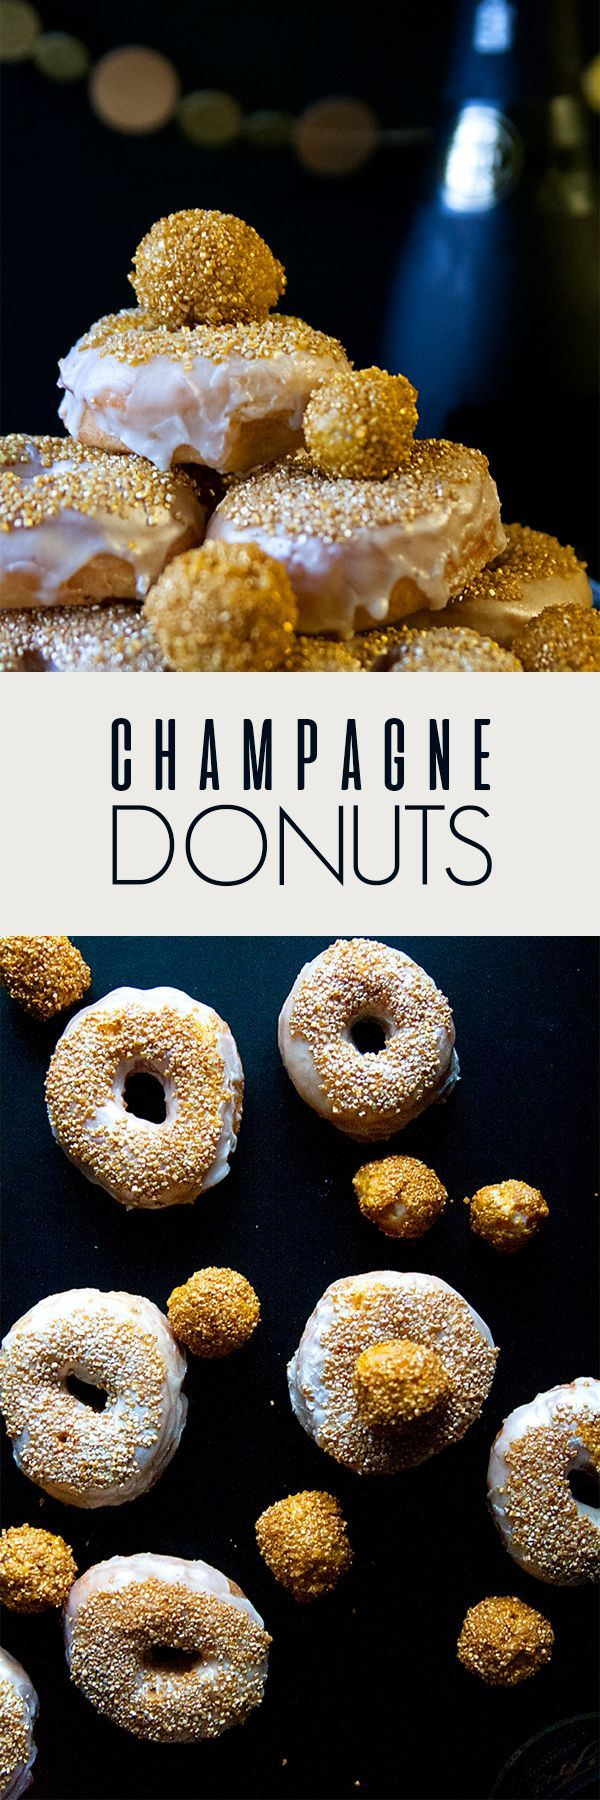 Kosher Recipes | Chanukah Recipes | New Year's Eve Recipes | This year the last night of Chanukah lands on New Year's Eve, so what better way to celebrate than with these delicious champagne donuts for sufganiyot?!